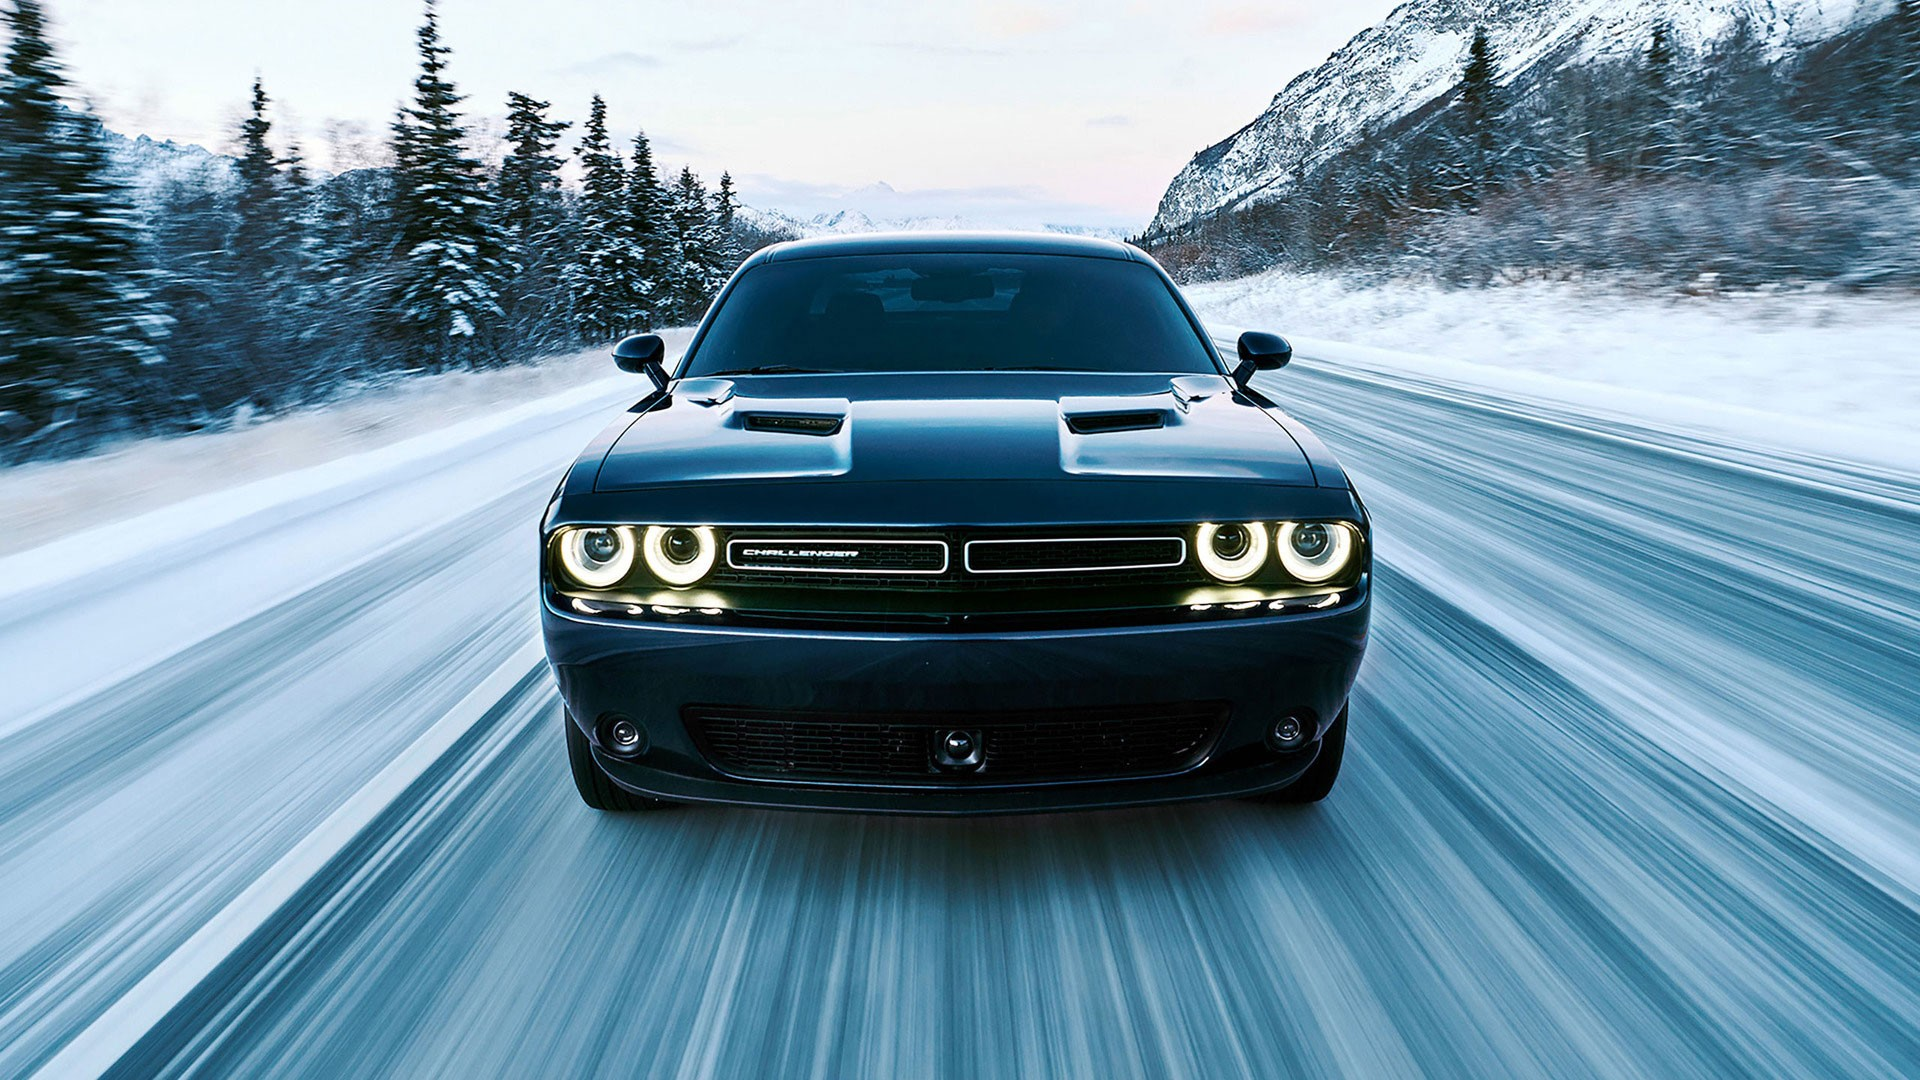 background - 4x4 svalovec Dodge Challenger?